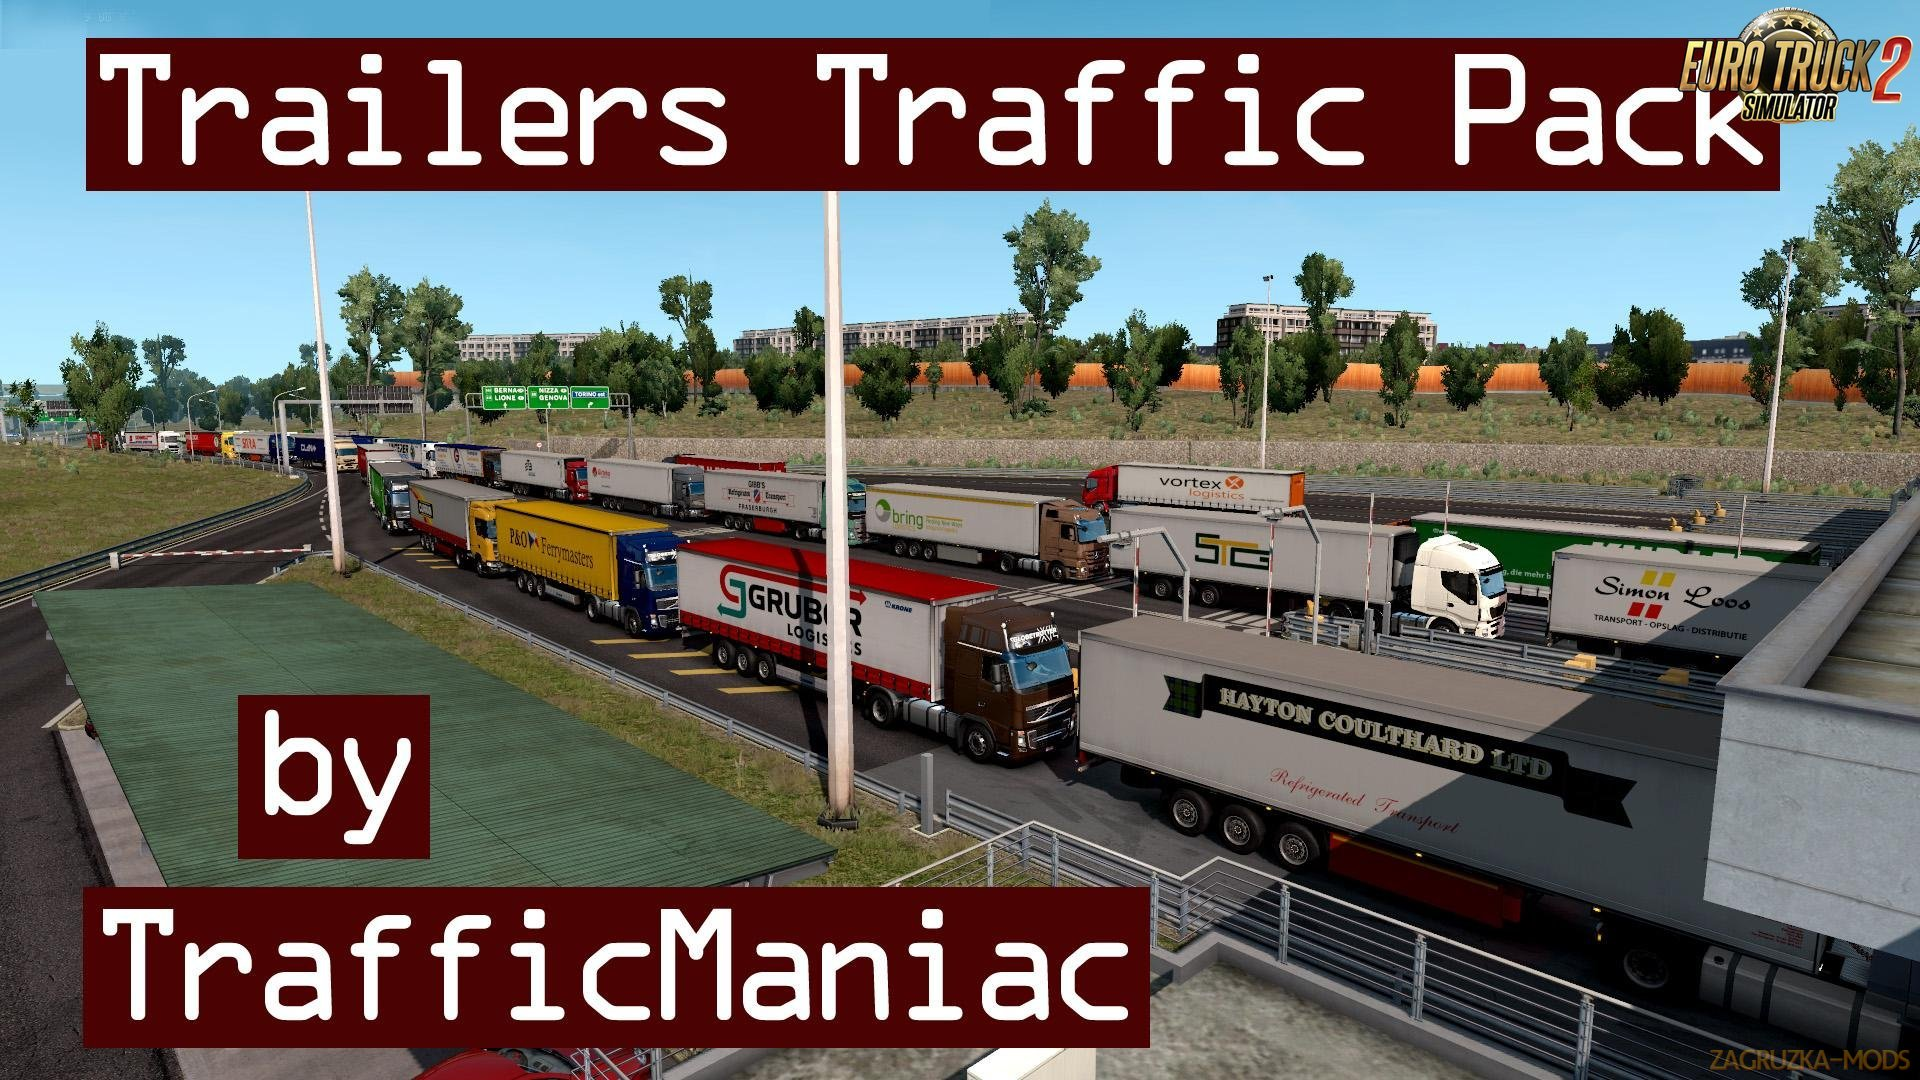 Trailers Traffic Pack v1.1 by TrafficManiac